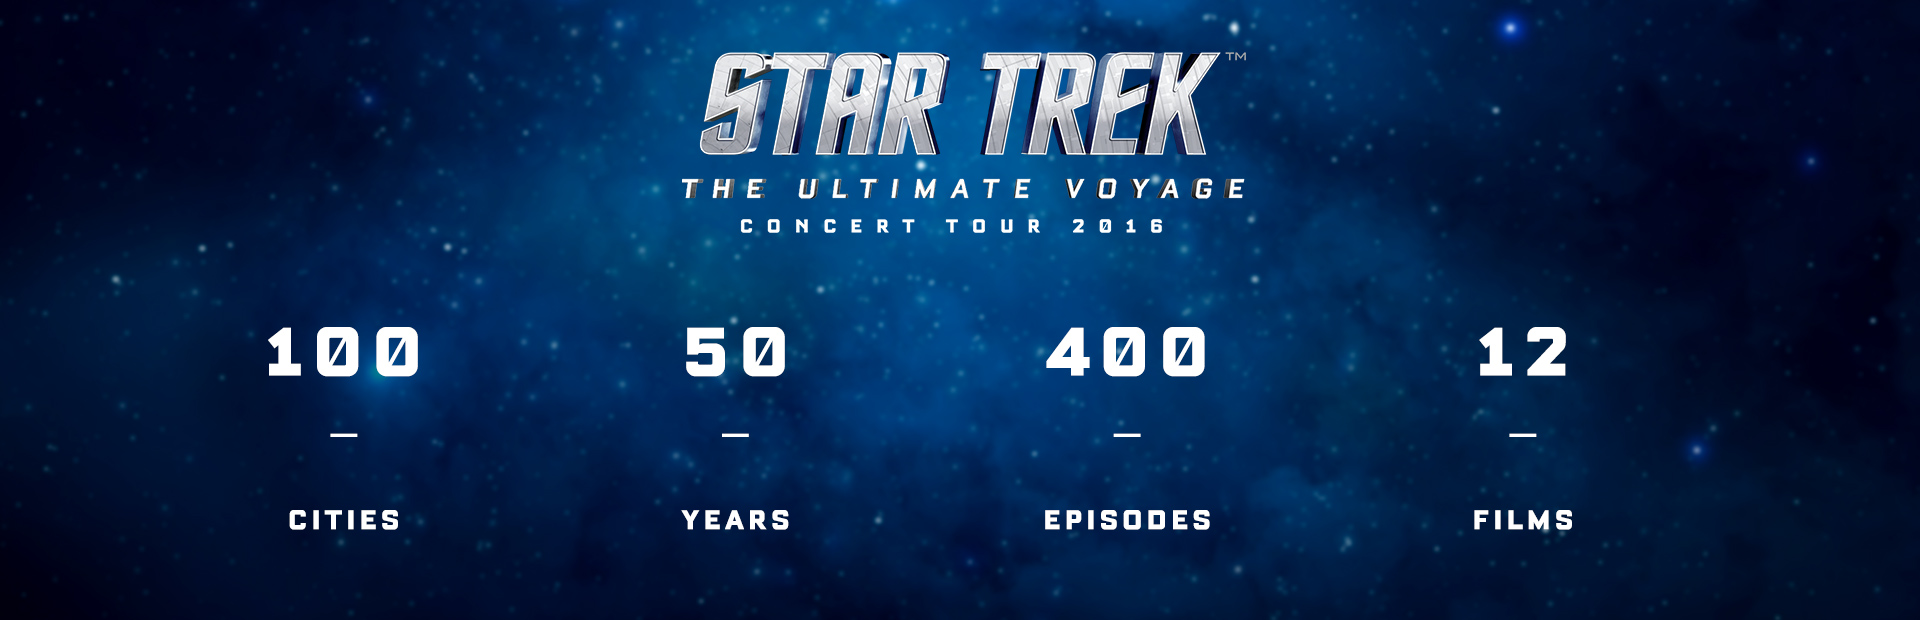 Star-Trek-Website-Project-Gallery-4-Count-Down